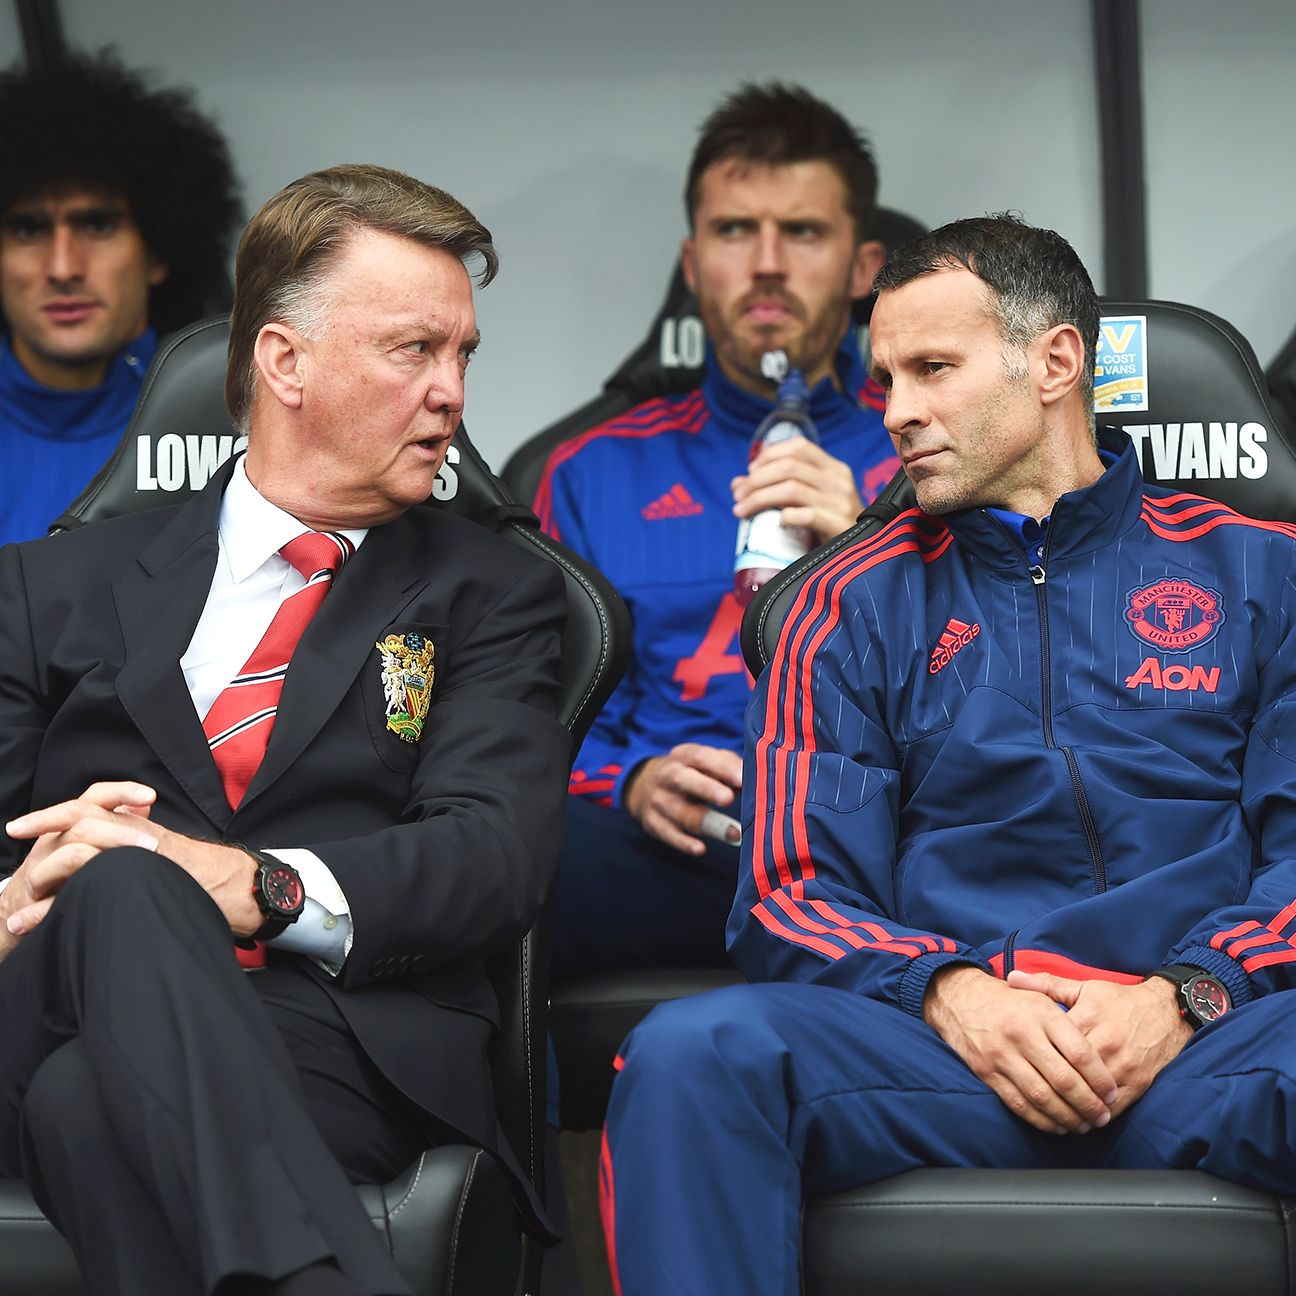 Ryan Giggs is assuredly reaping the benefits of sitting next to Louis van Gaal, despite Manchester United's disappointing results.